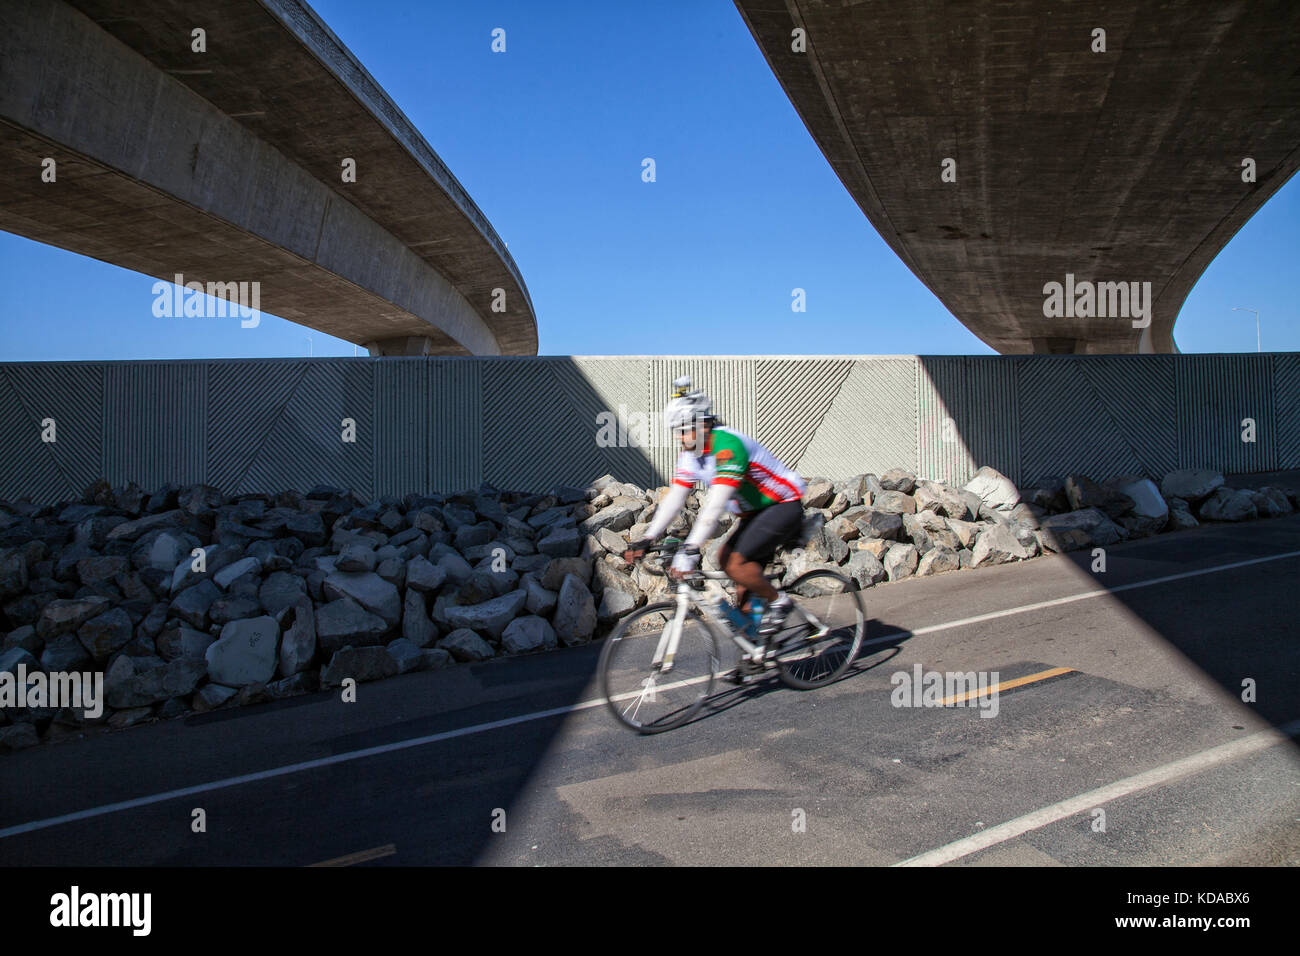 Bicycle path under the 105 freeway next to Los Angeles River, Los Angeles, California, USA - Stock Image